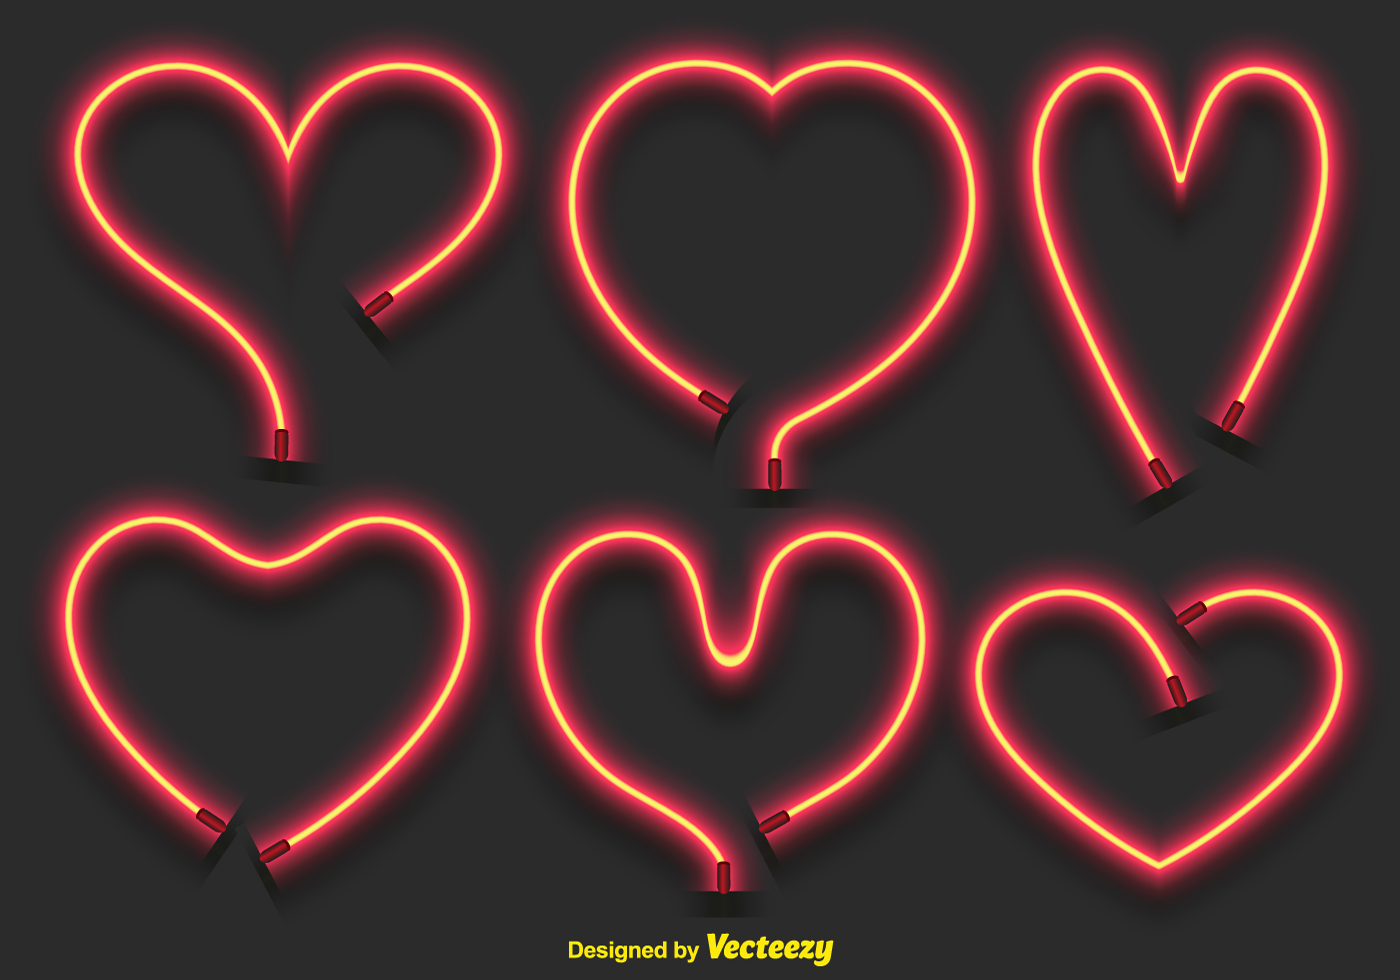 Neon Heart Free Vector Art - (147 Free Downloads)